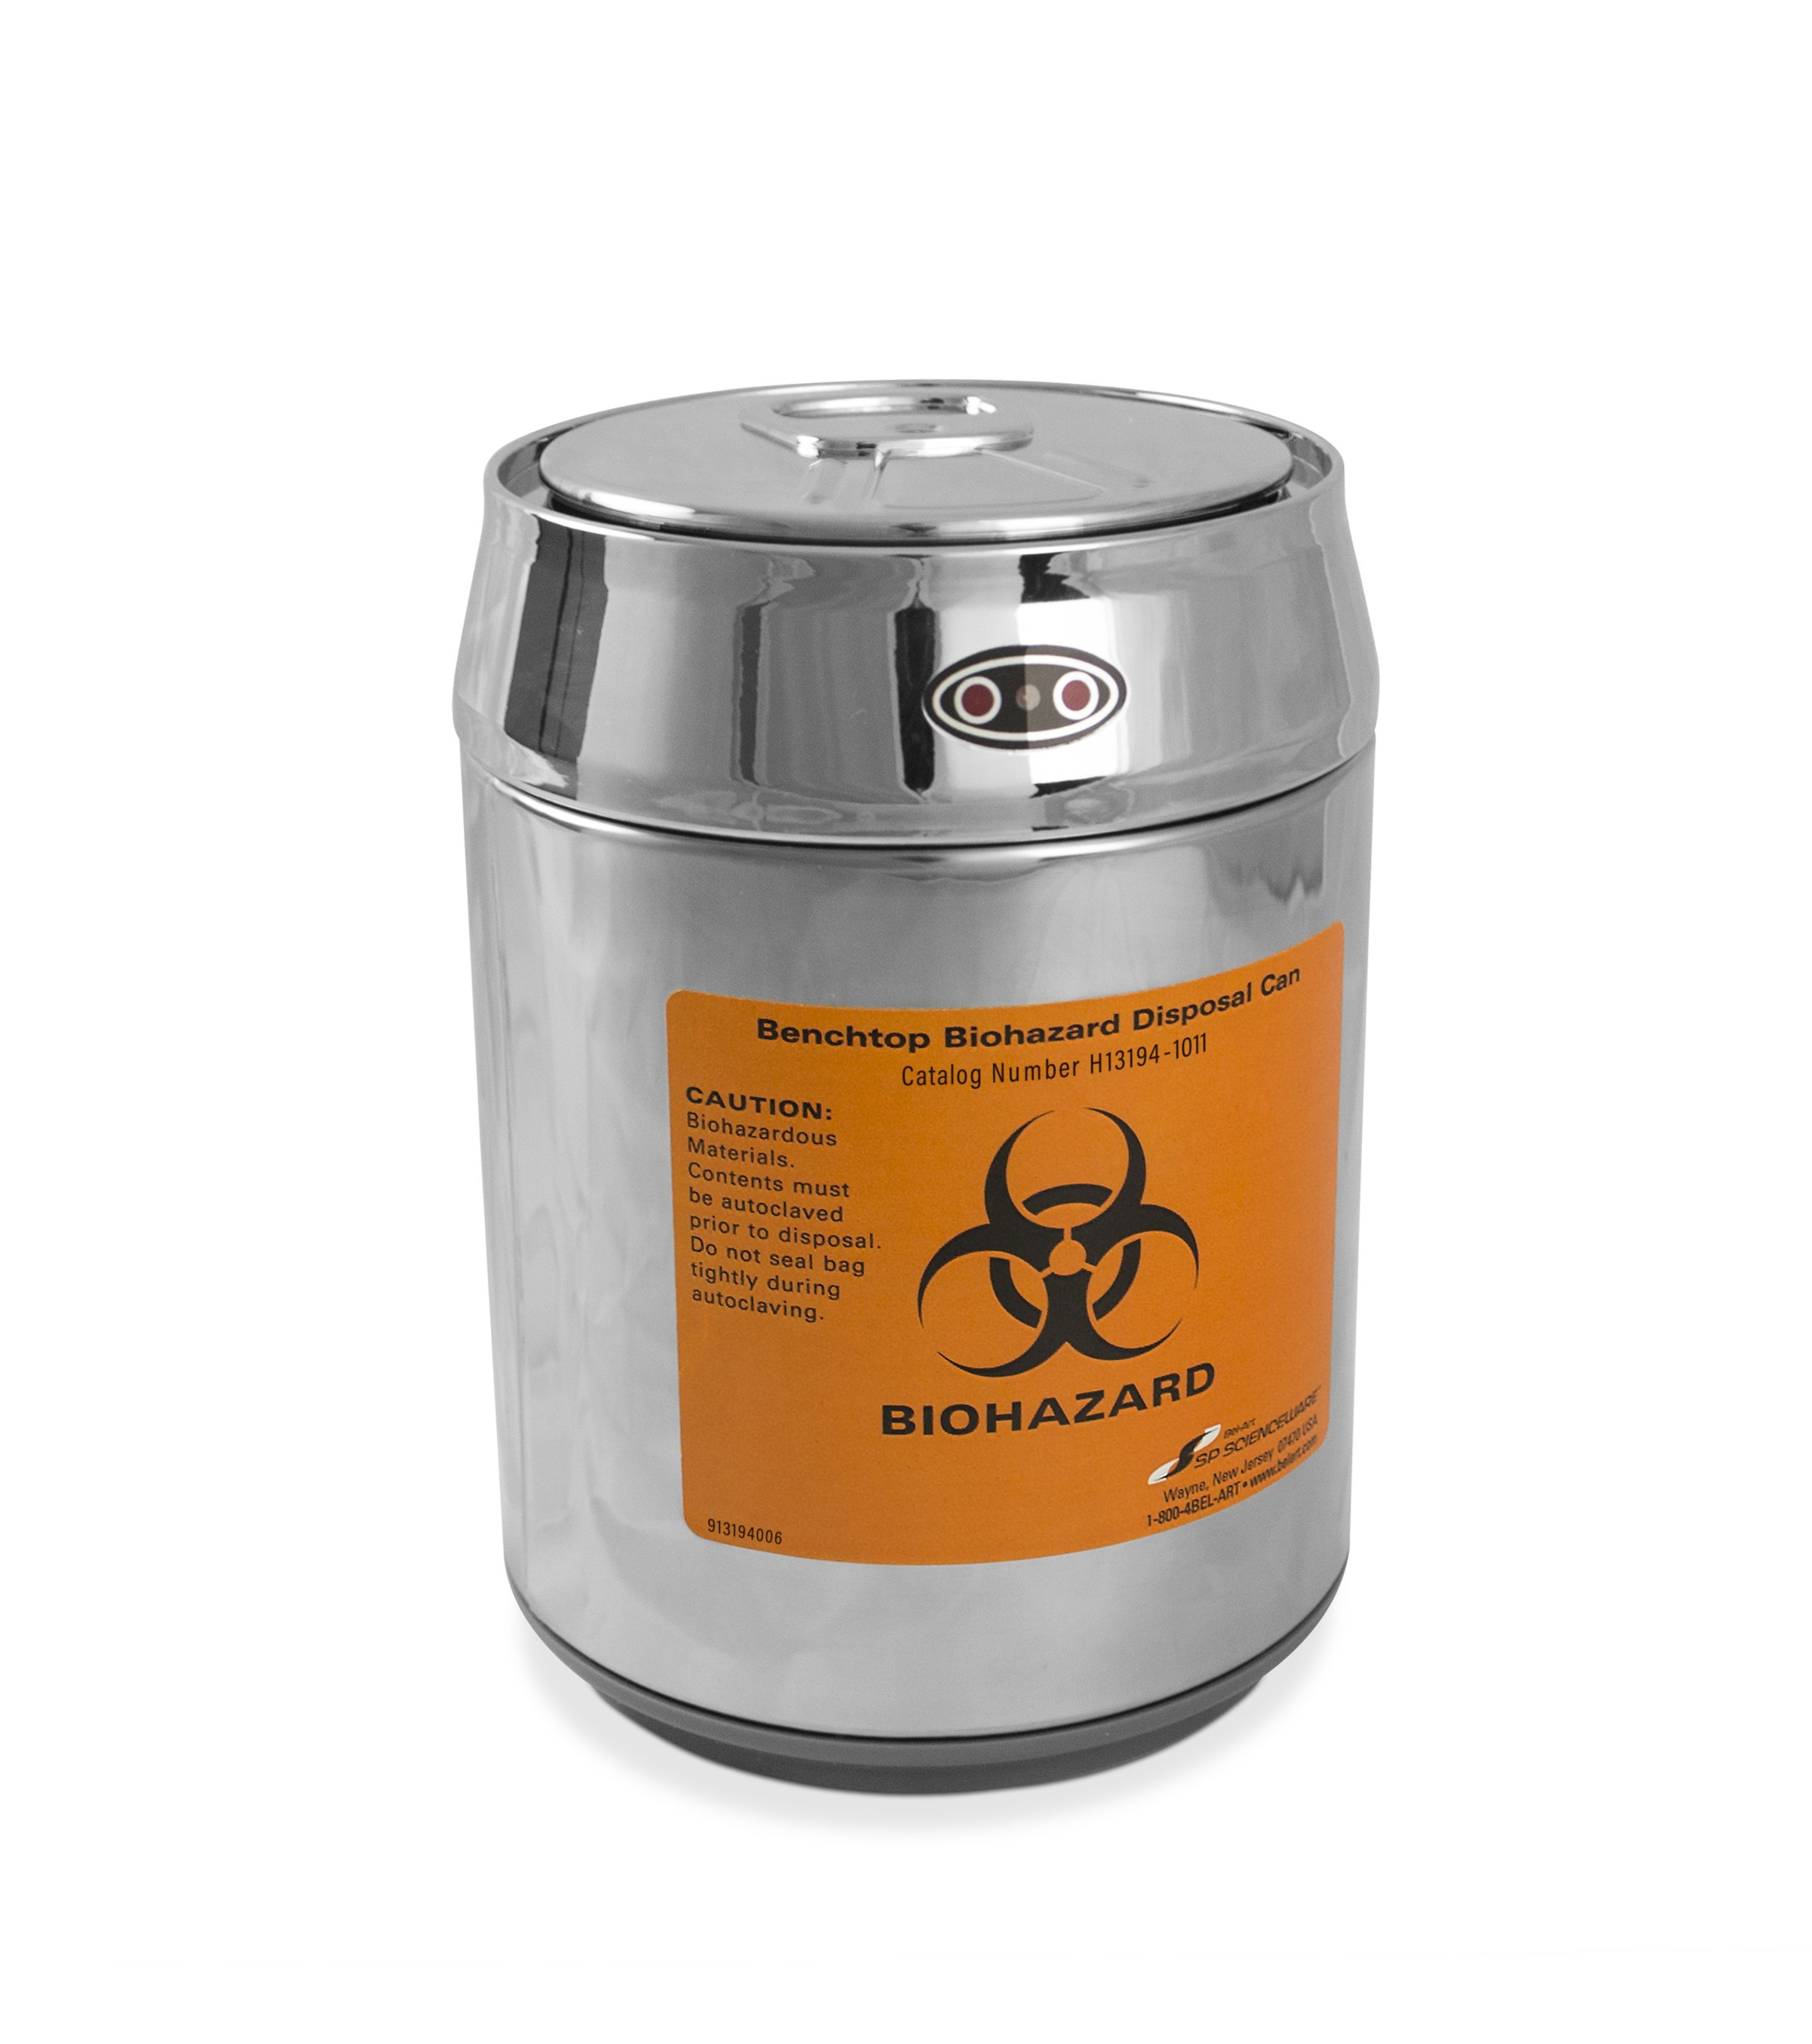 Benchtop Biohazard Disposal Can with Motion Sensor Lid